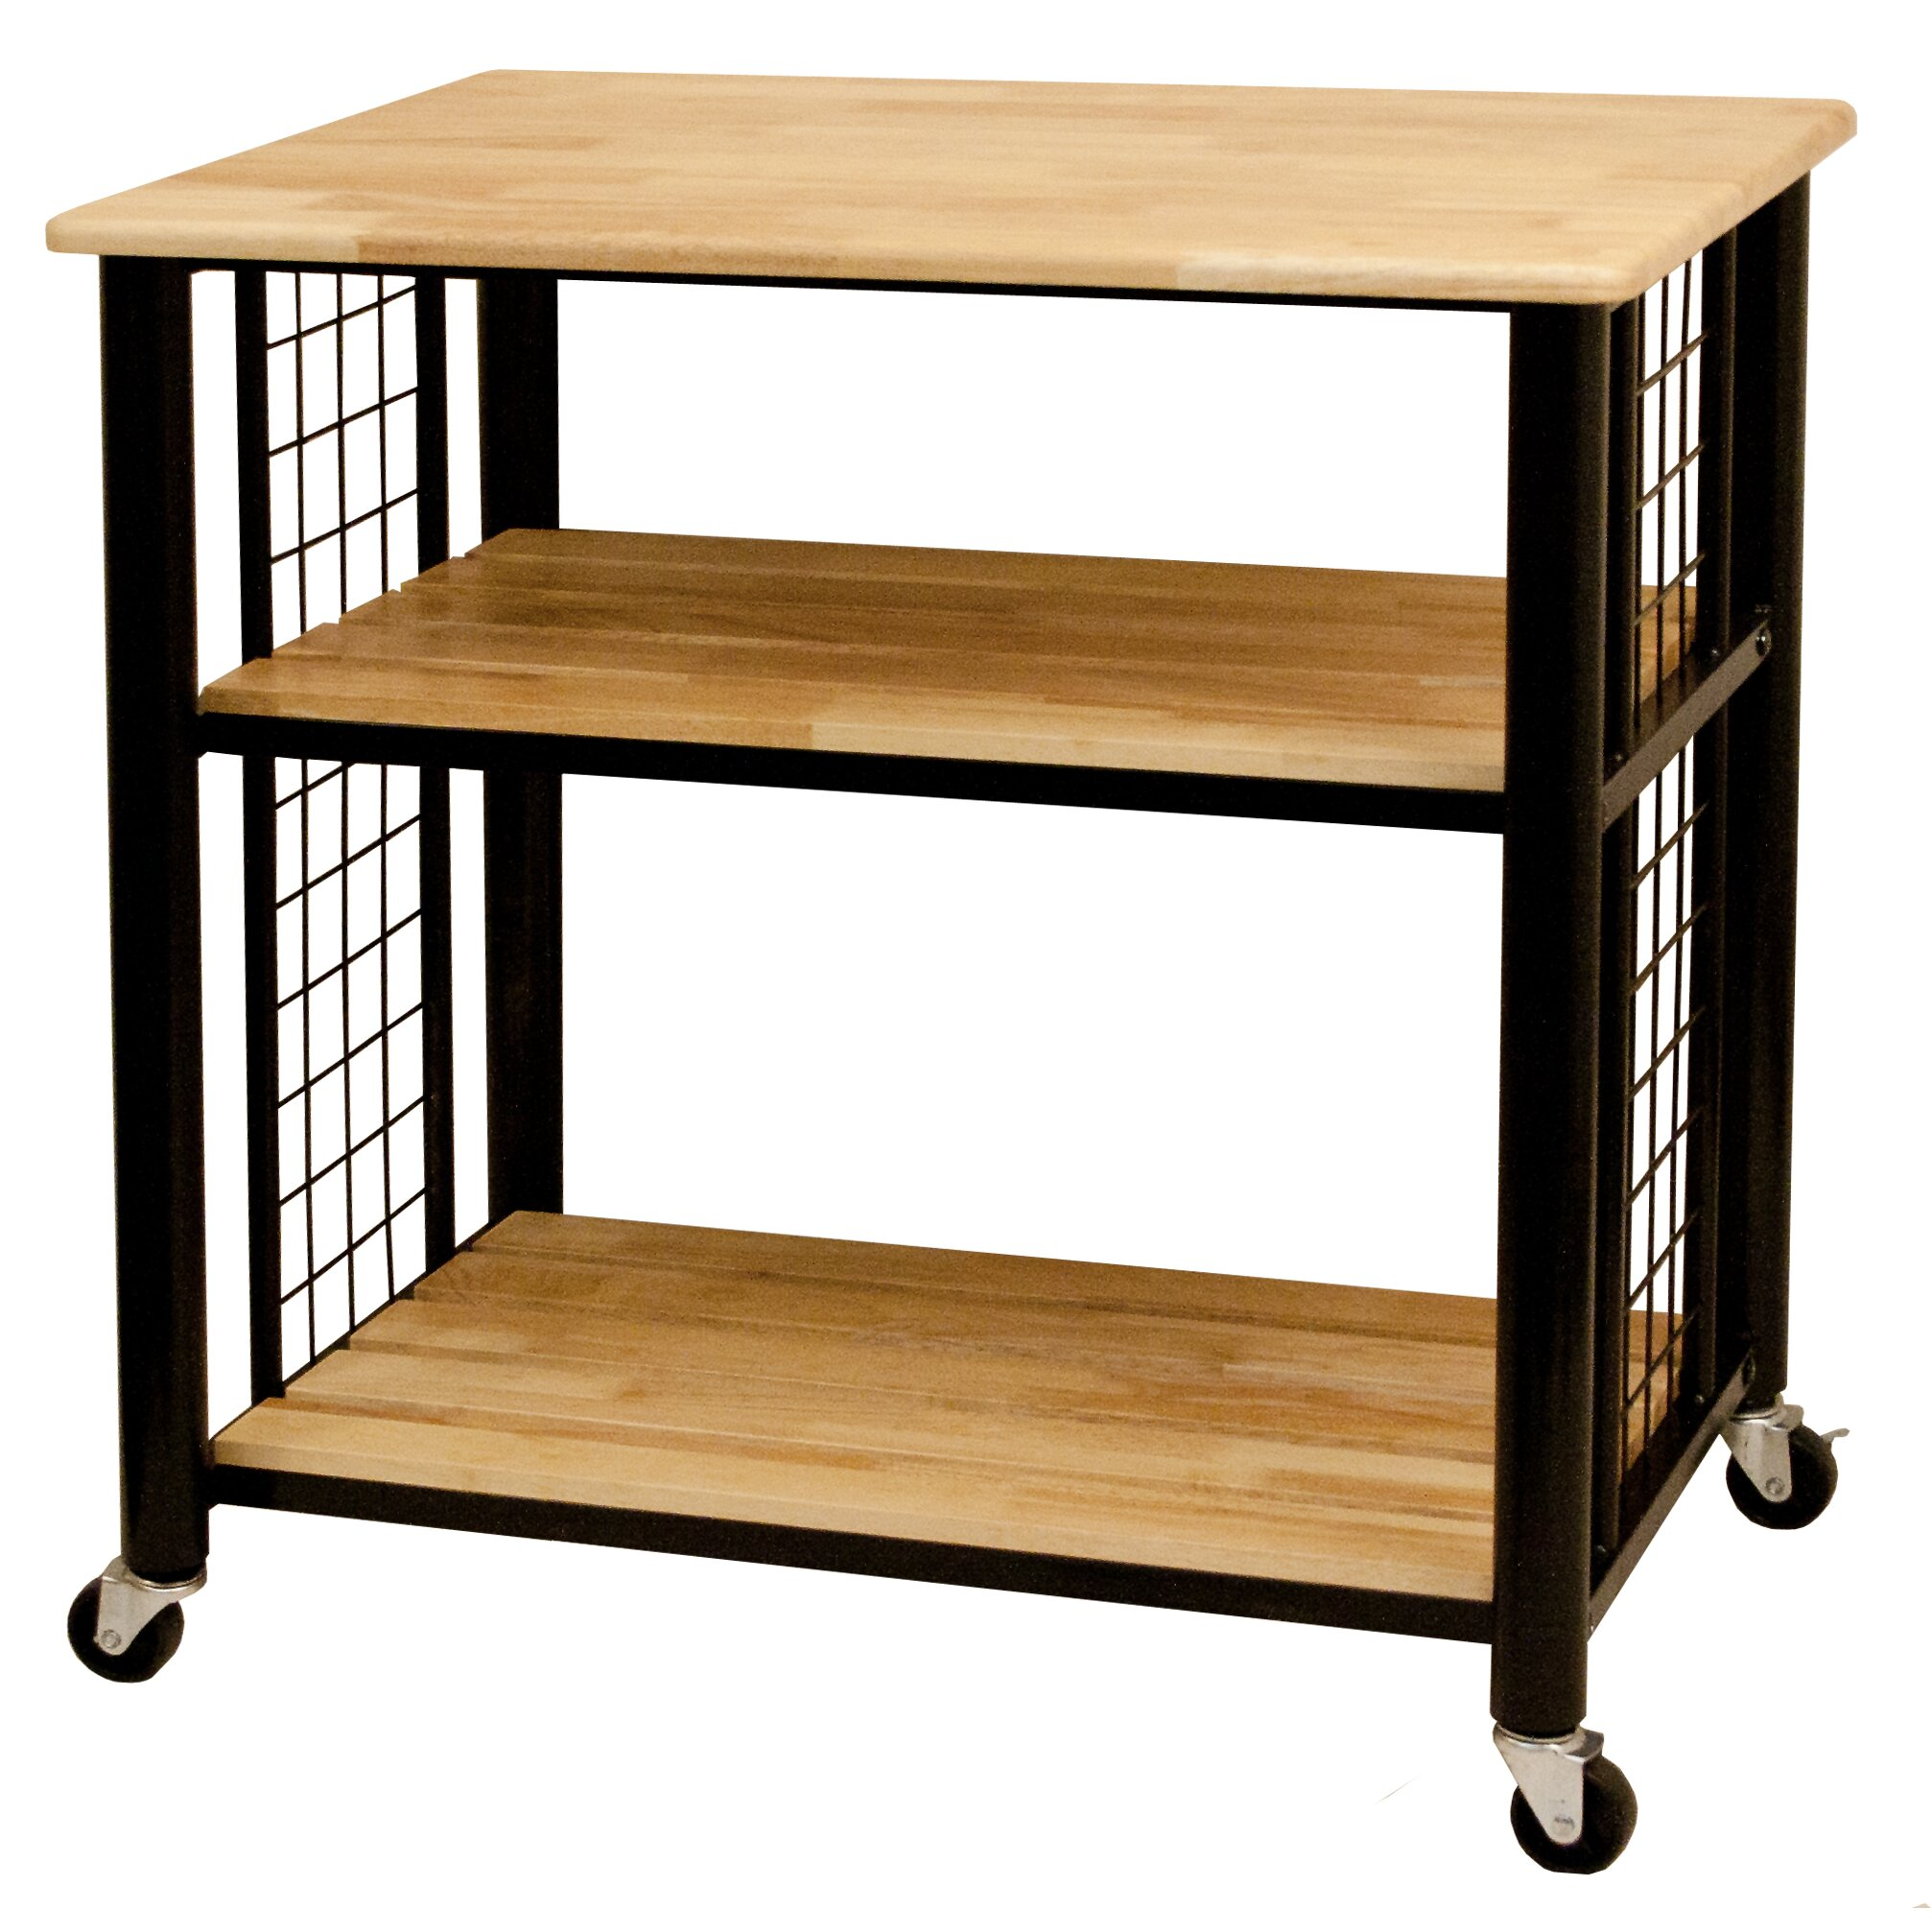 catskill craftsmen kitchen cart  wayfair, Kitchen design